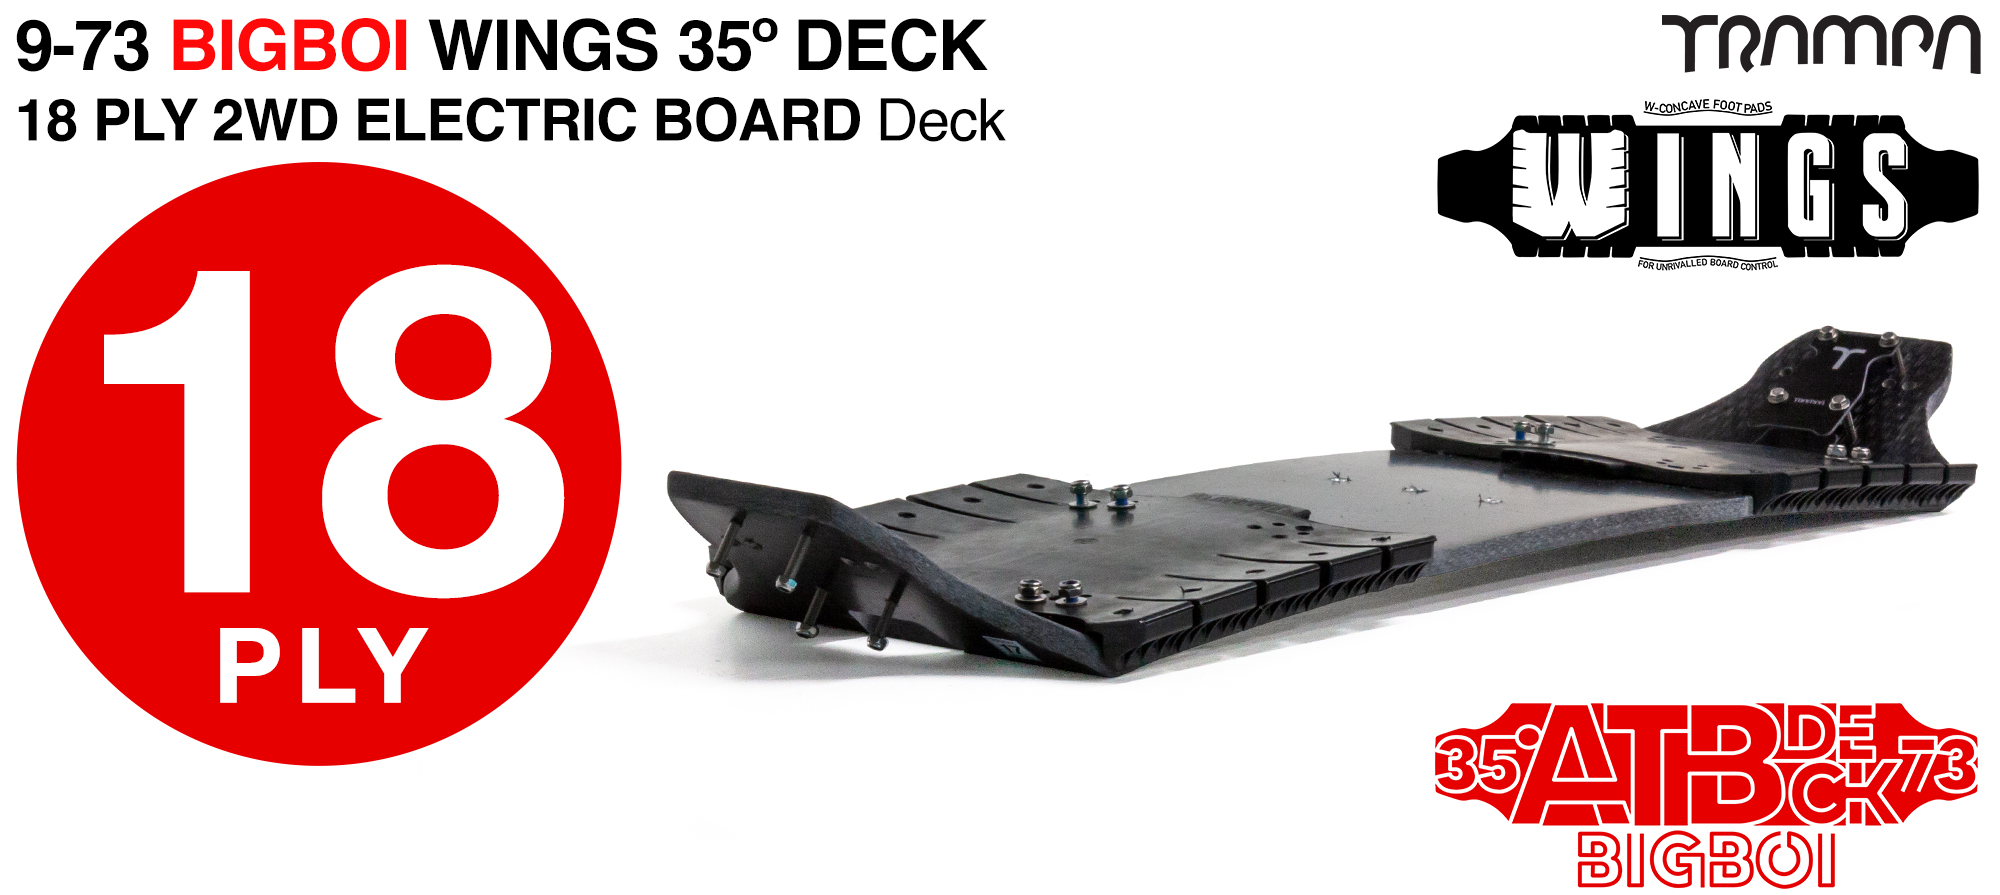 18ply 9-73 BigBoi Deck with WINGS & 2WD Cable Router - Stiffest